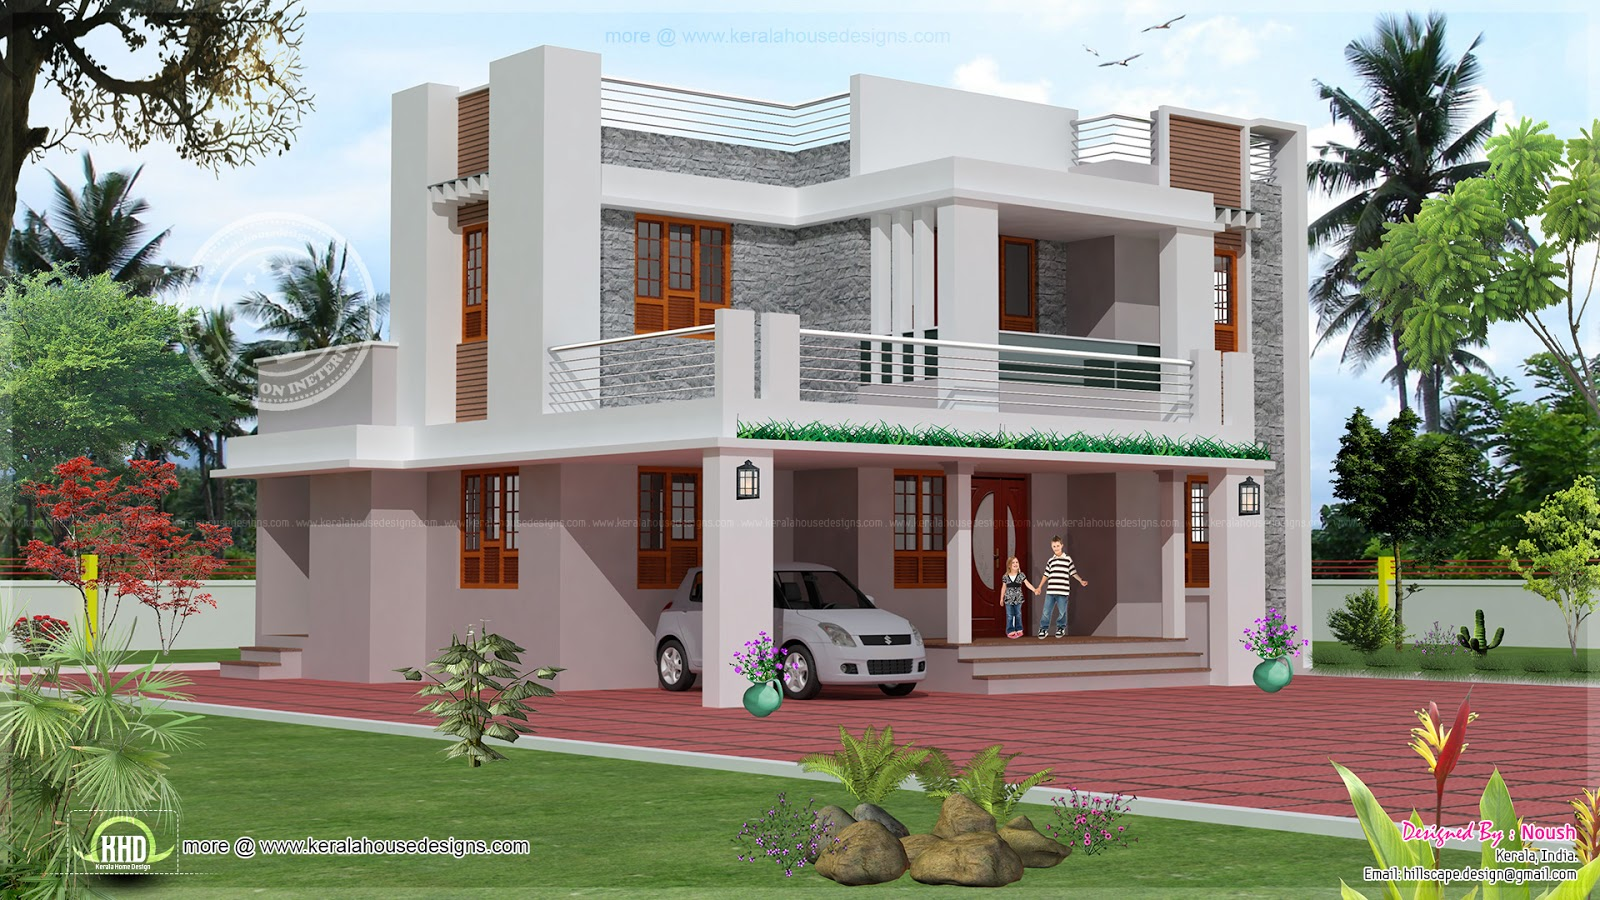 4 bedroom 2 story house exterior design home kerala plans for Two storey house plans in kerala